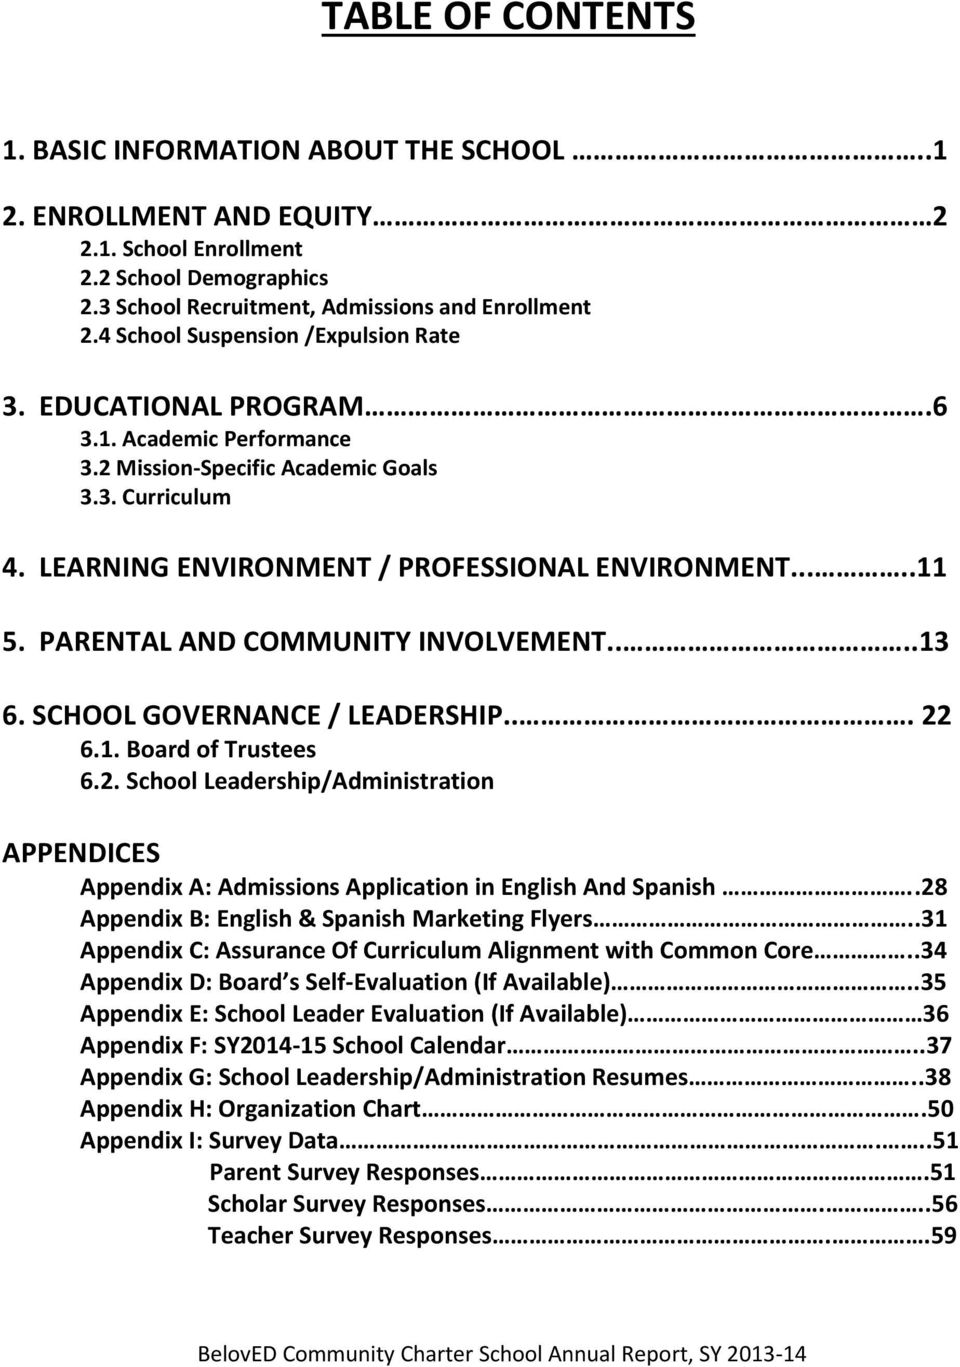 PARENTAL AND COMMUNITY INVOLVEMENT....13 6. SCHOOL GOVERNANCE / LEADERSHIP... 22 6.1. Board of Trustees 6.2. School Leadership/Administration APPENDICES Appendix A: Admissions Application in English And Spanish.